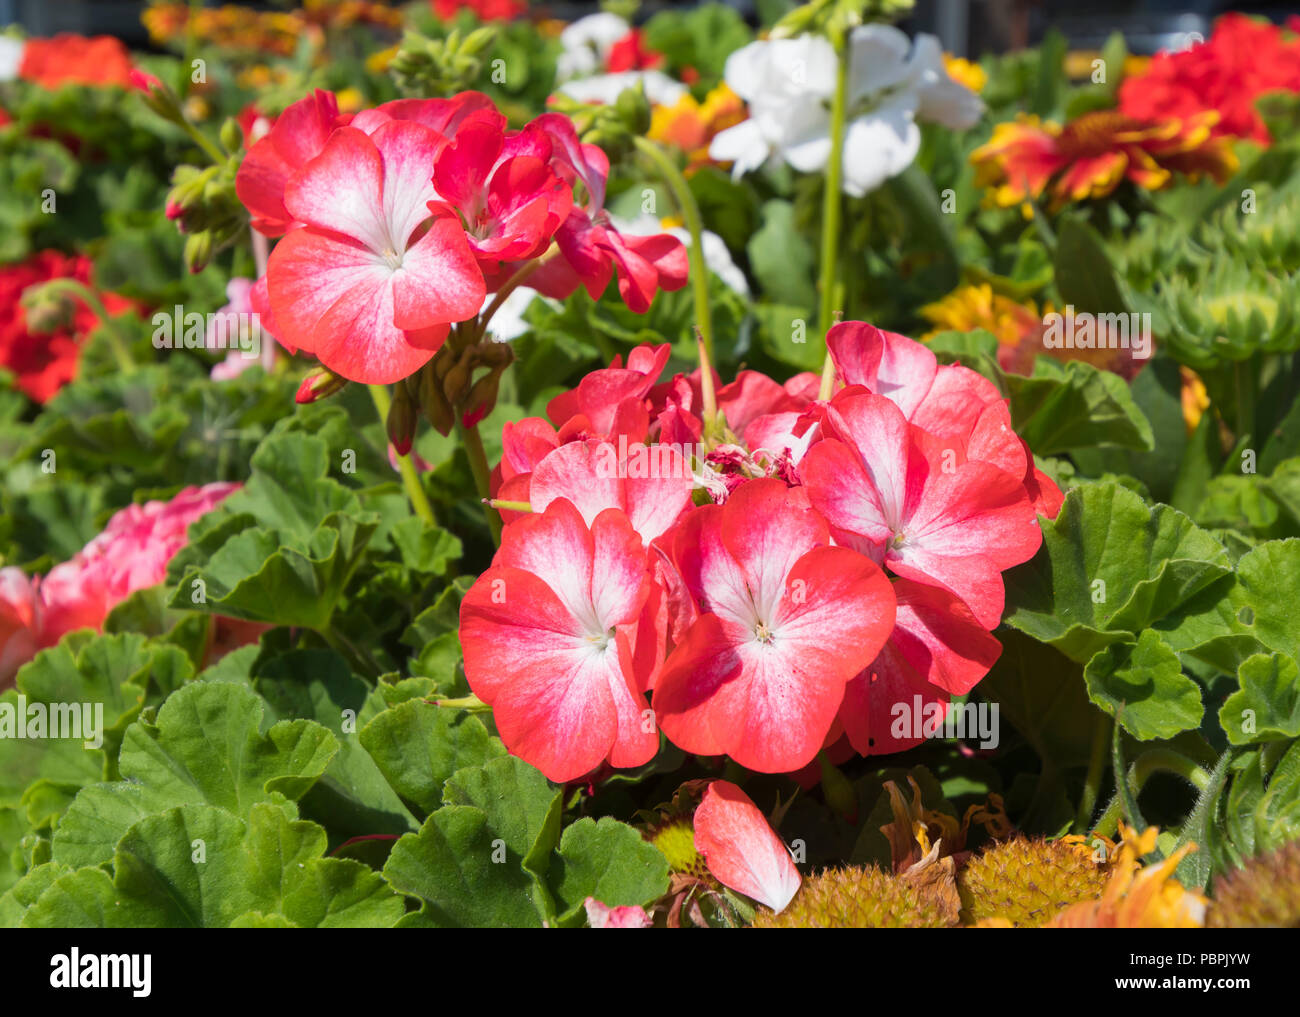 Hydrangea macrophylla. Red Hydrangeas flowers in Summer (July) flowering in West Sussex, England, UK. - Stock Image